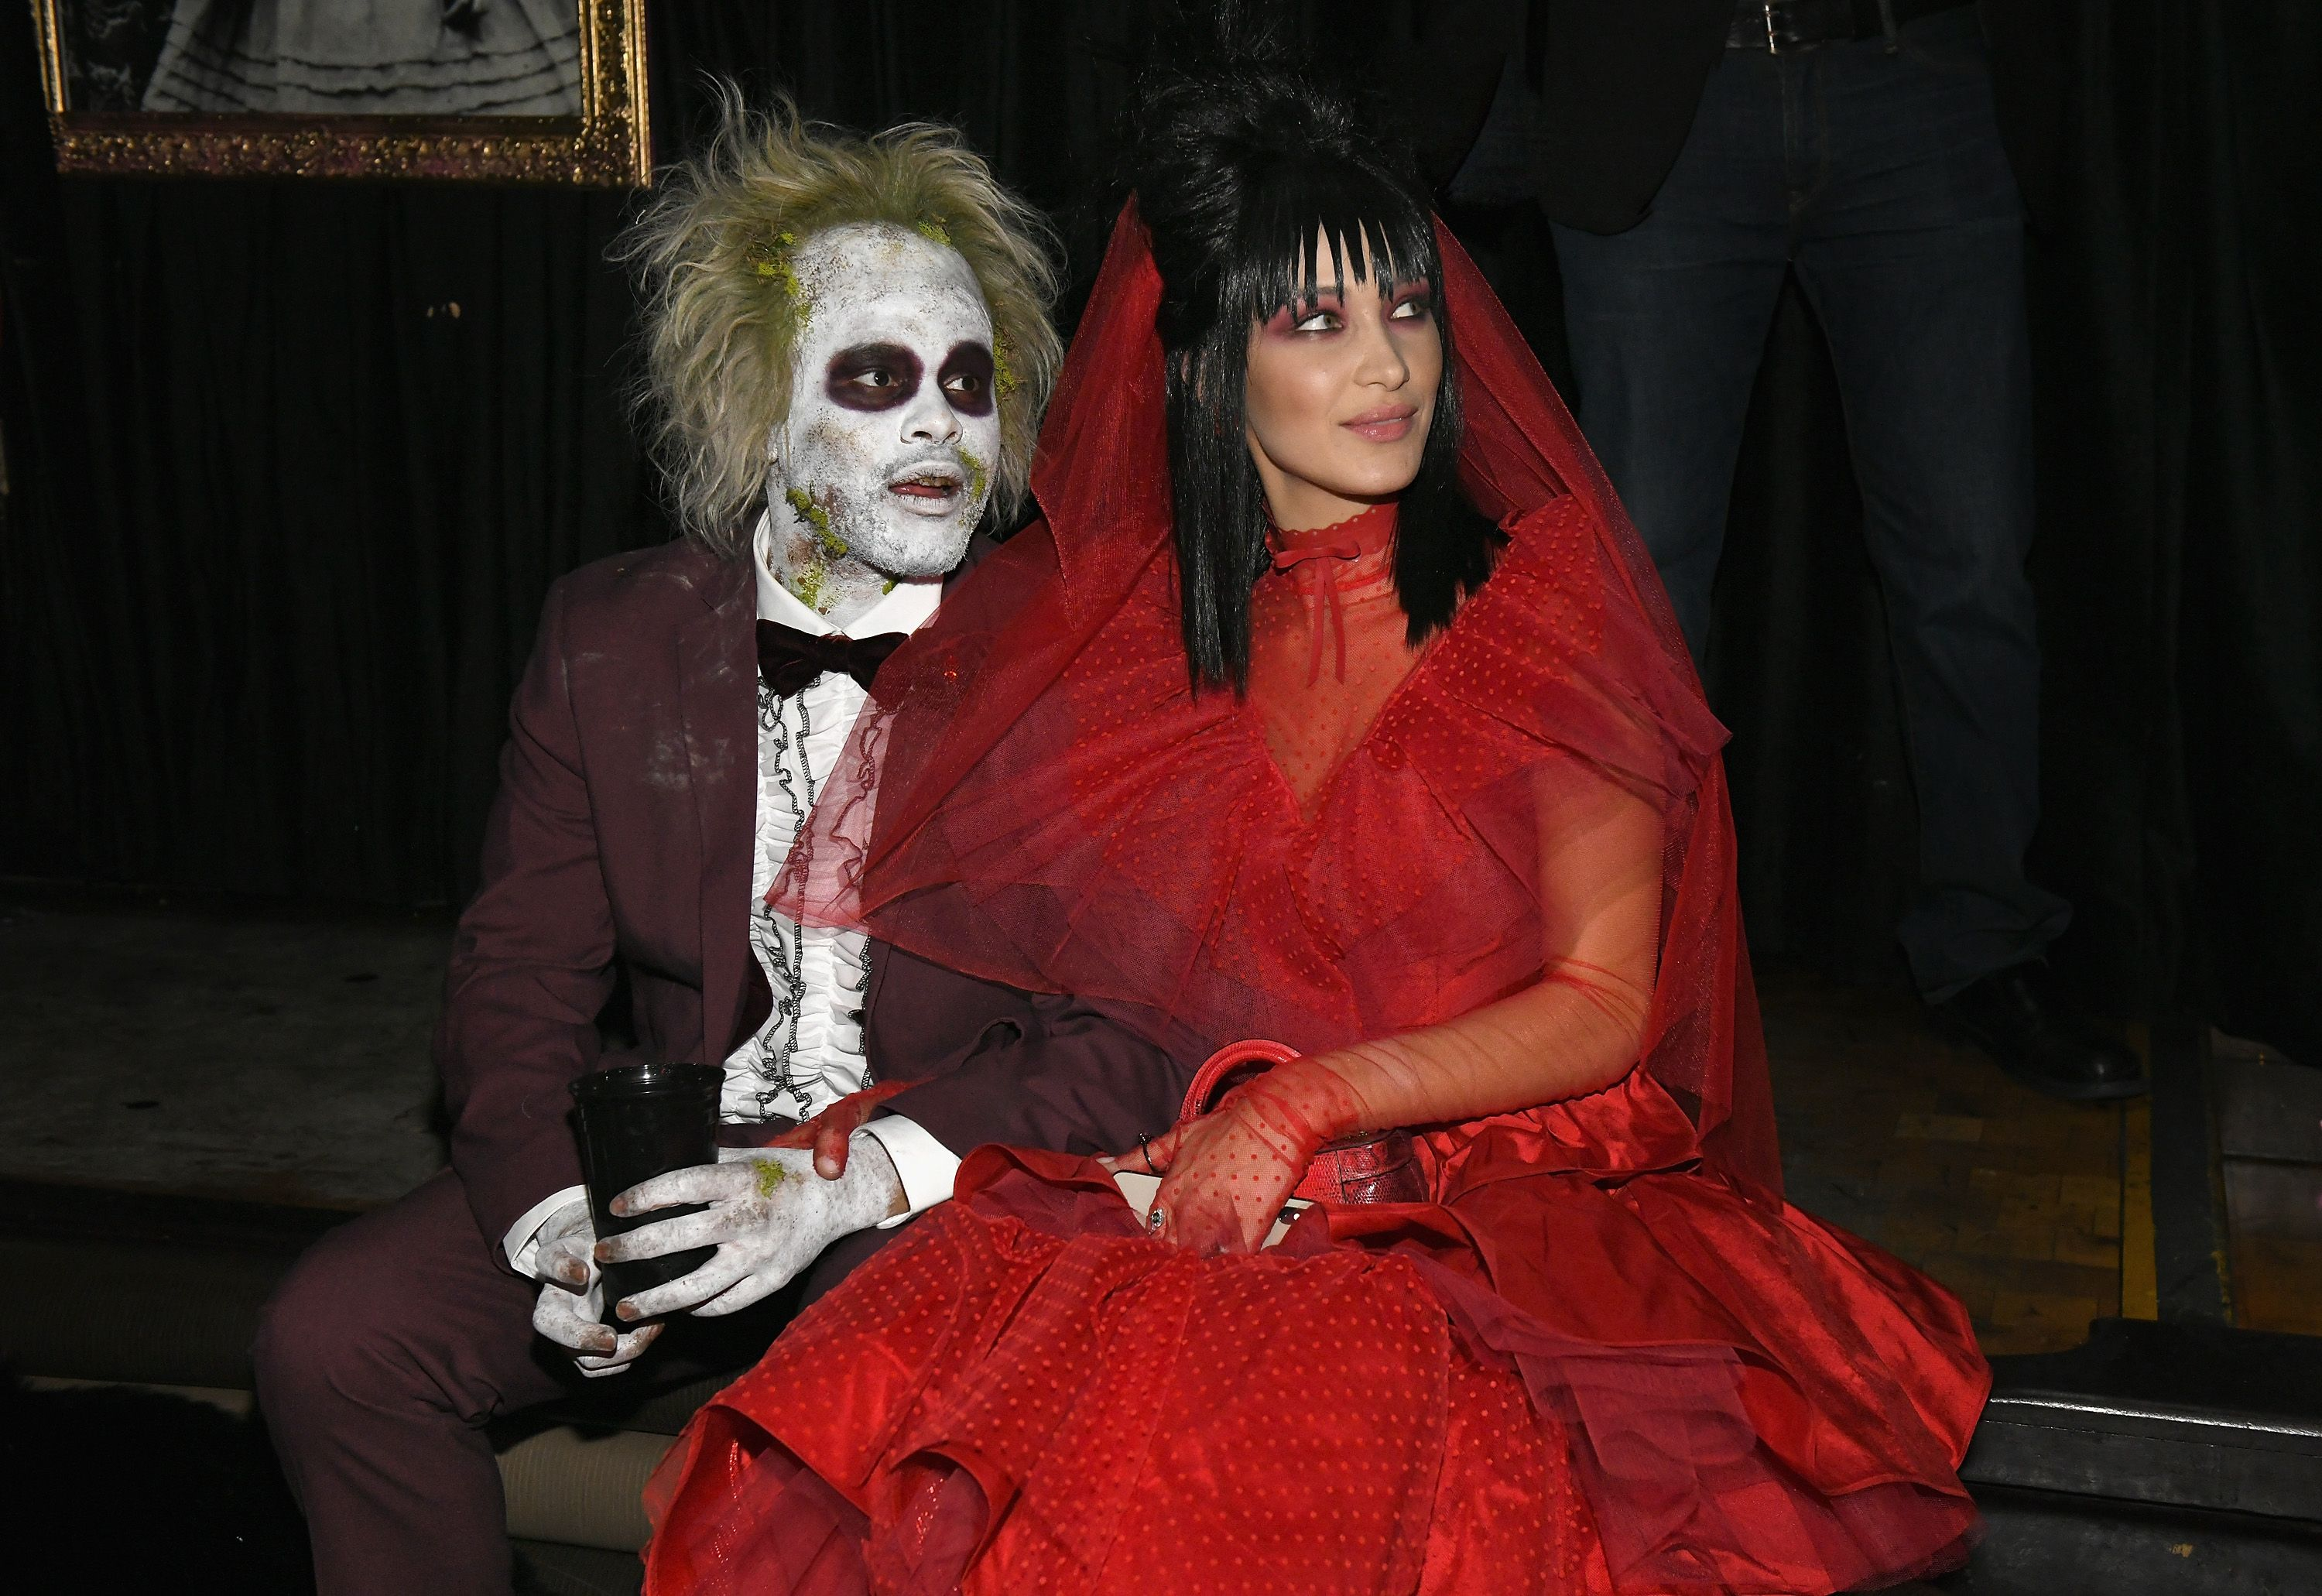 61 Celeb Couples Who Pulled Off the Best Halloween Costumes